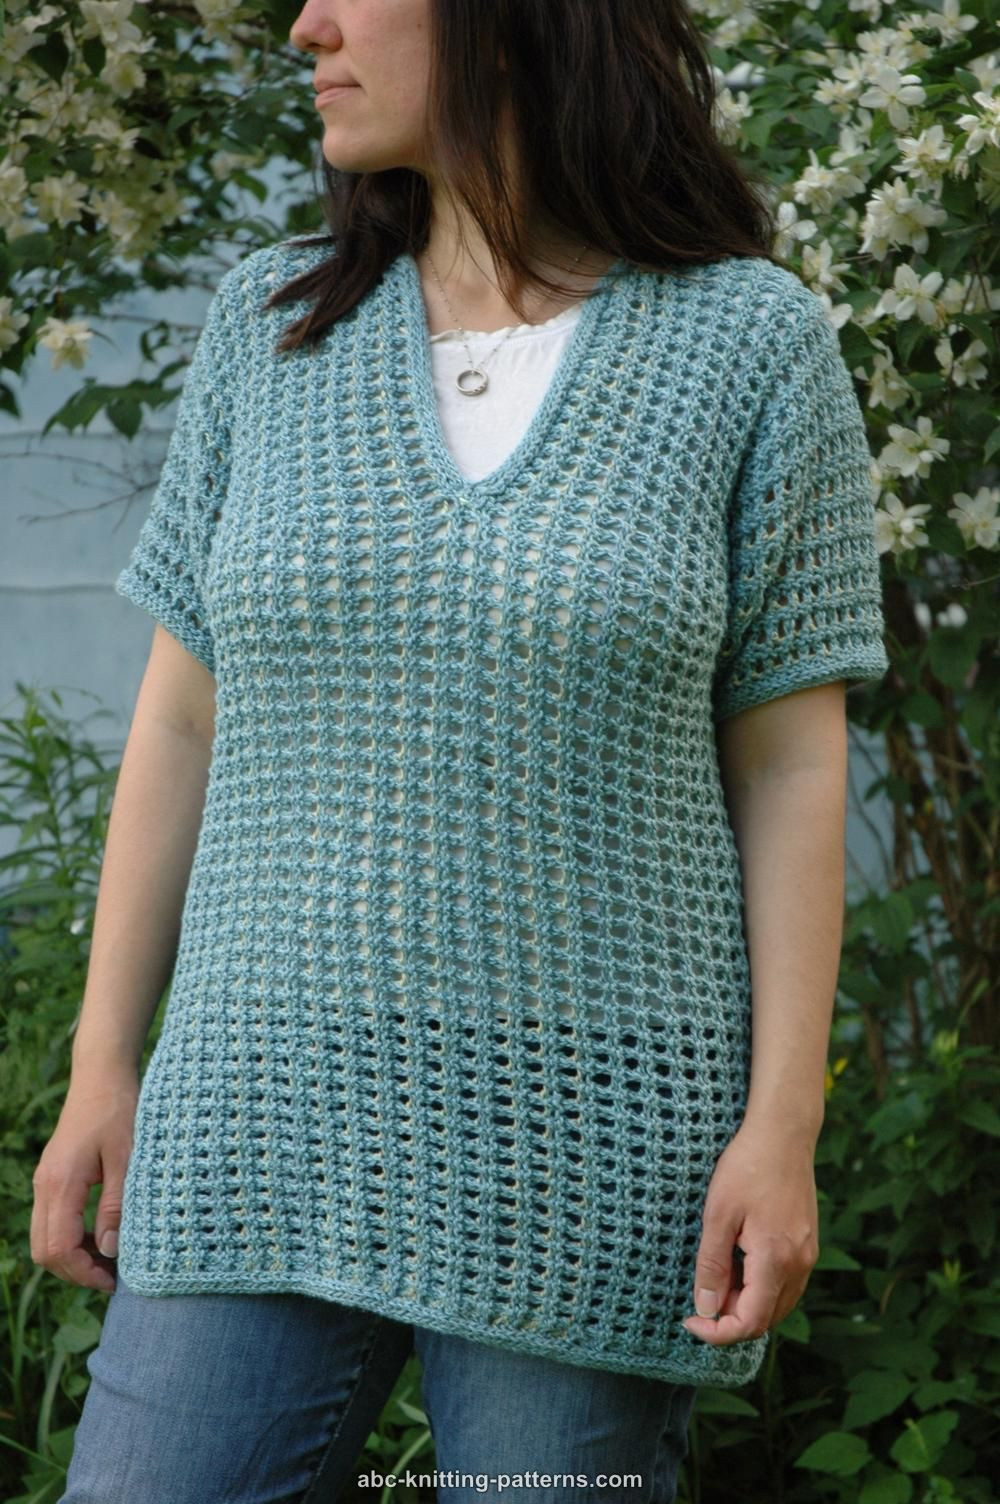 Best Of Abc Knitting Patterns Subtle Mesh Summer Sweater Summer Knitting Patterns Of Perfect 47 Pictures Summer Knitting Patterns